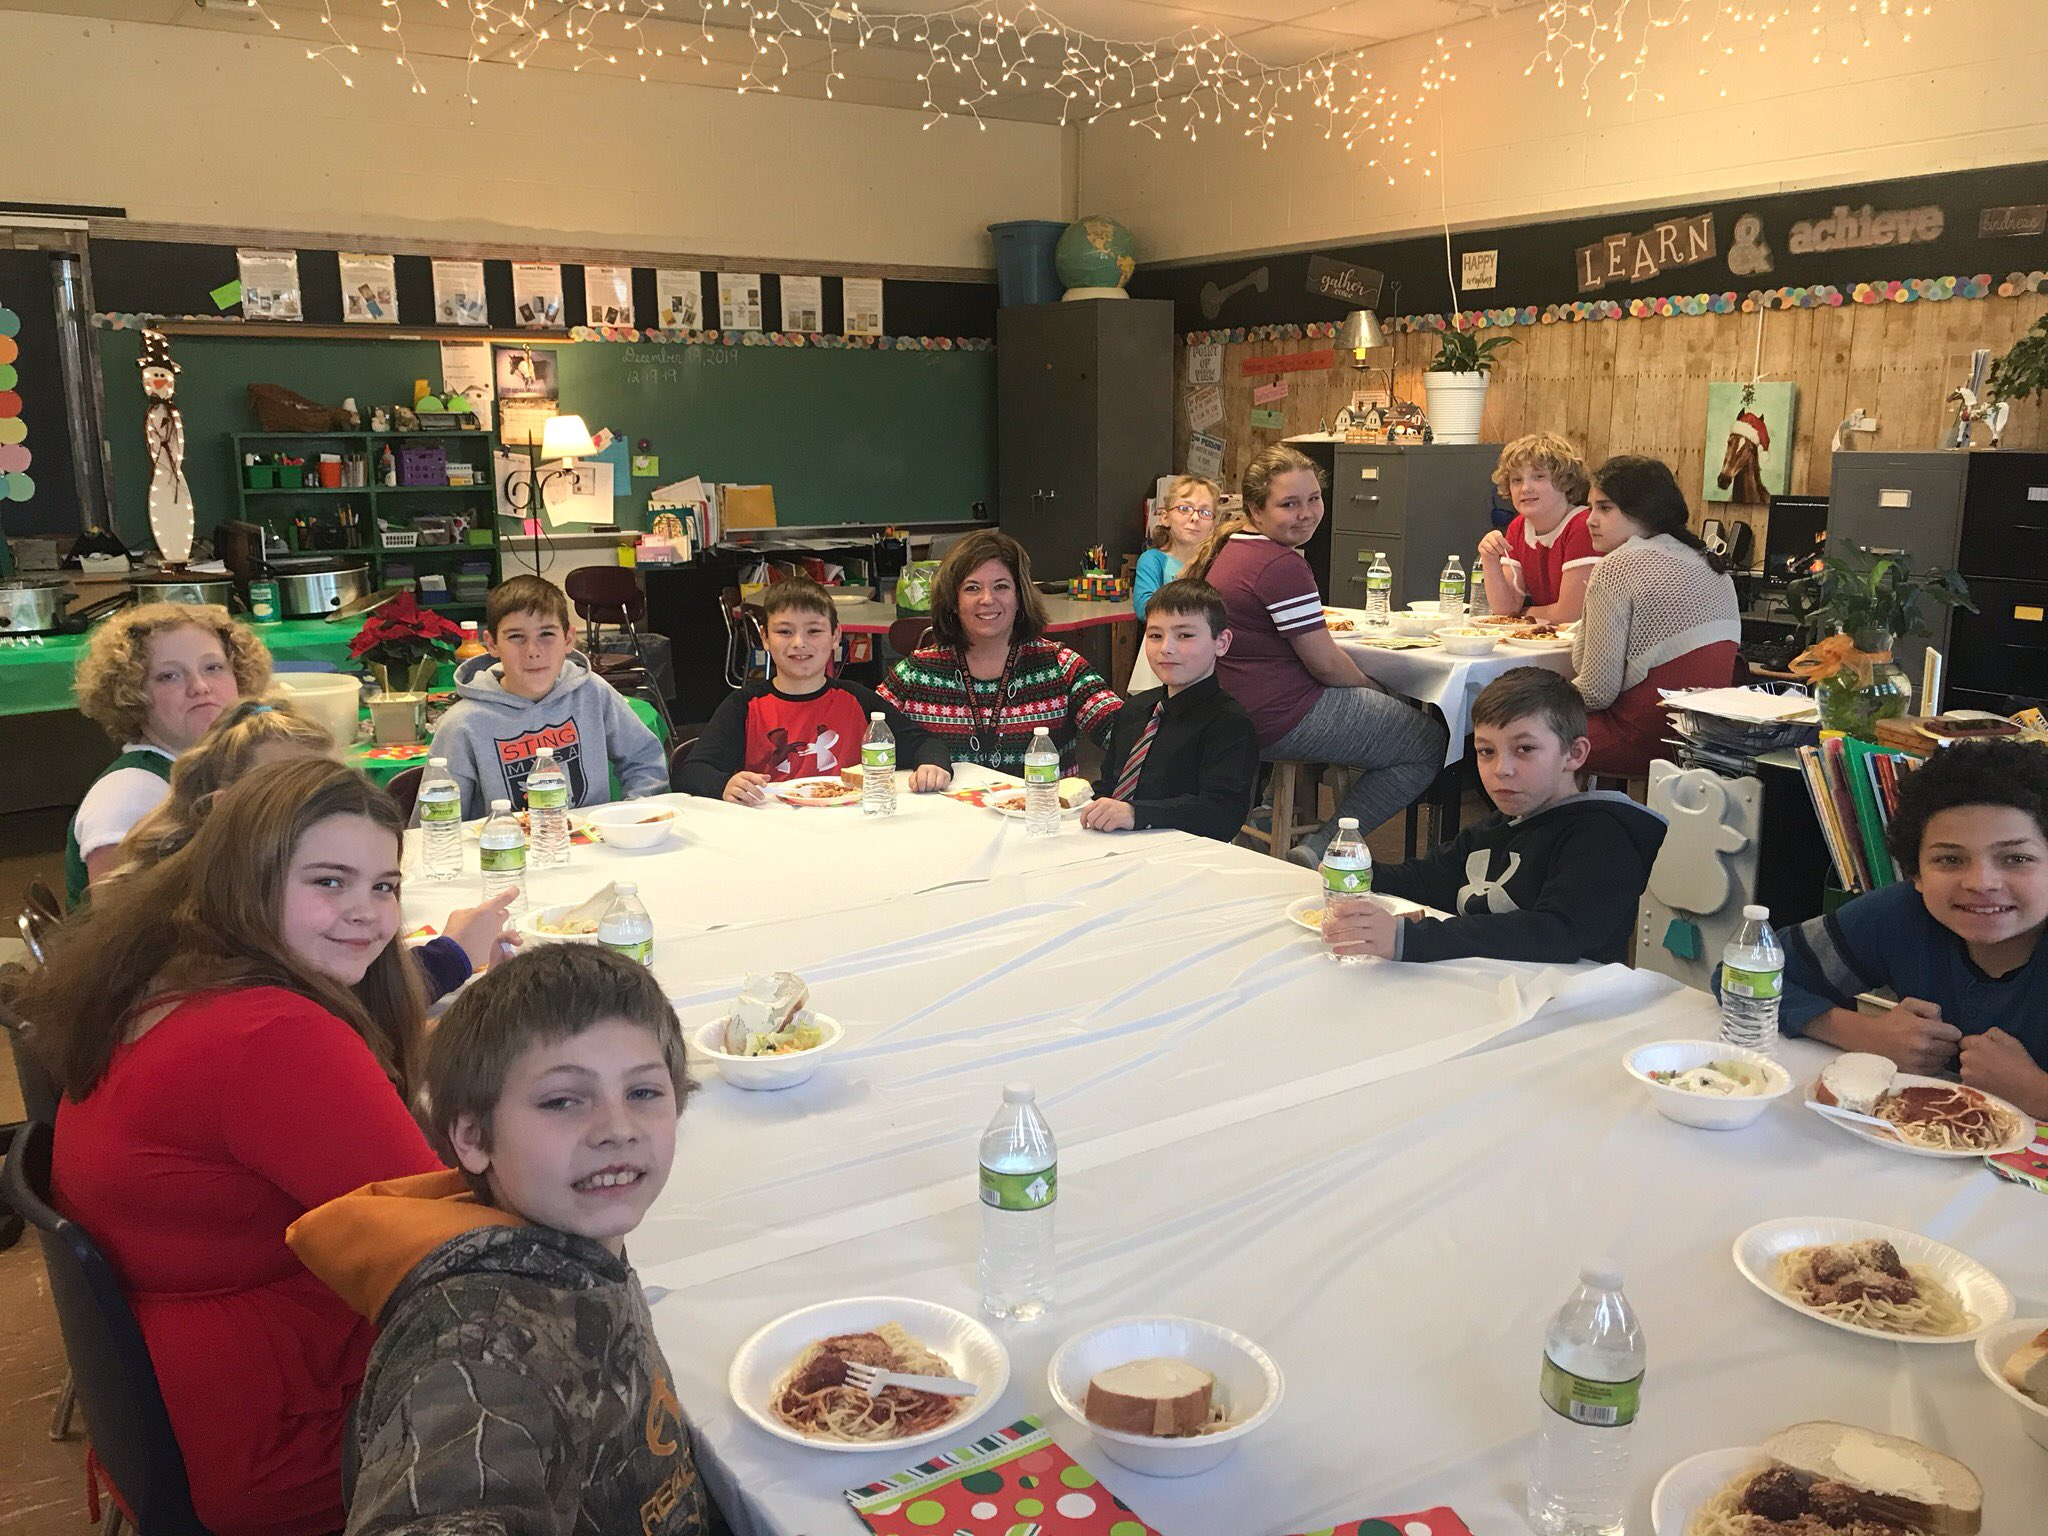 Pleasant Street students and teachers having dinner at the school.